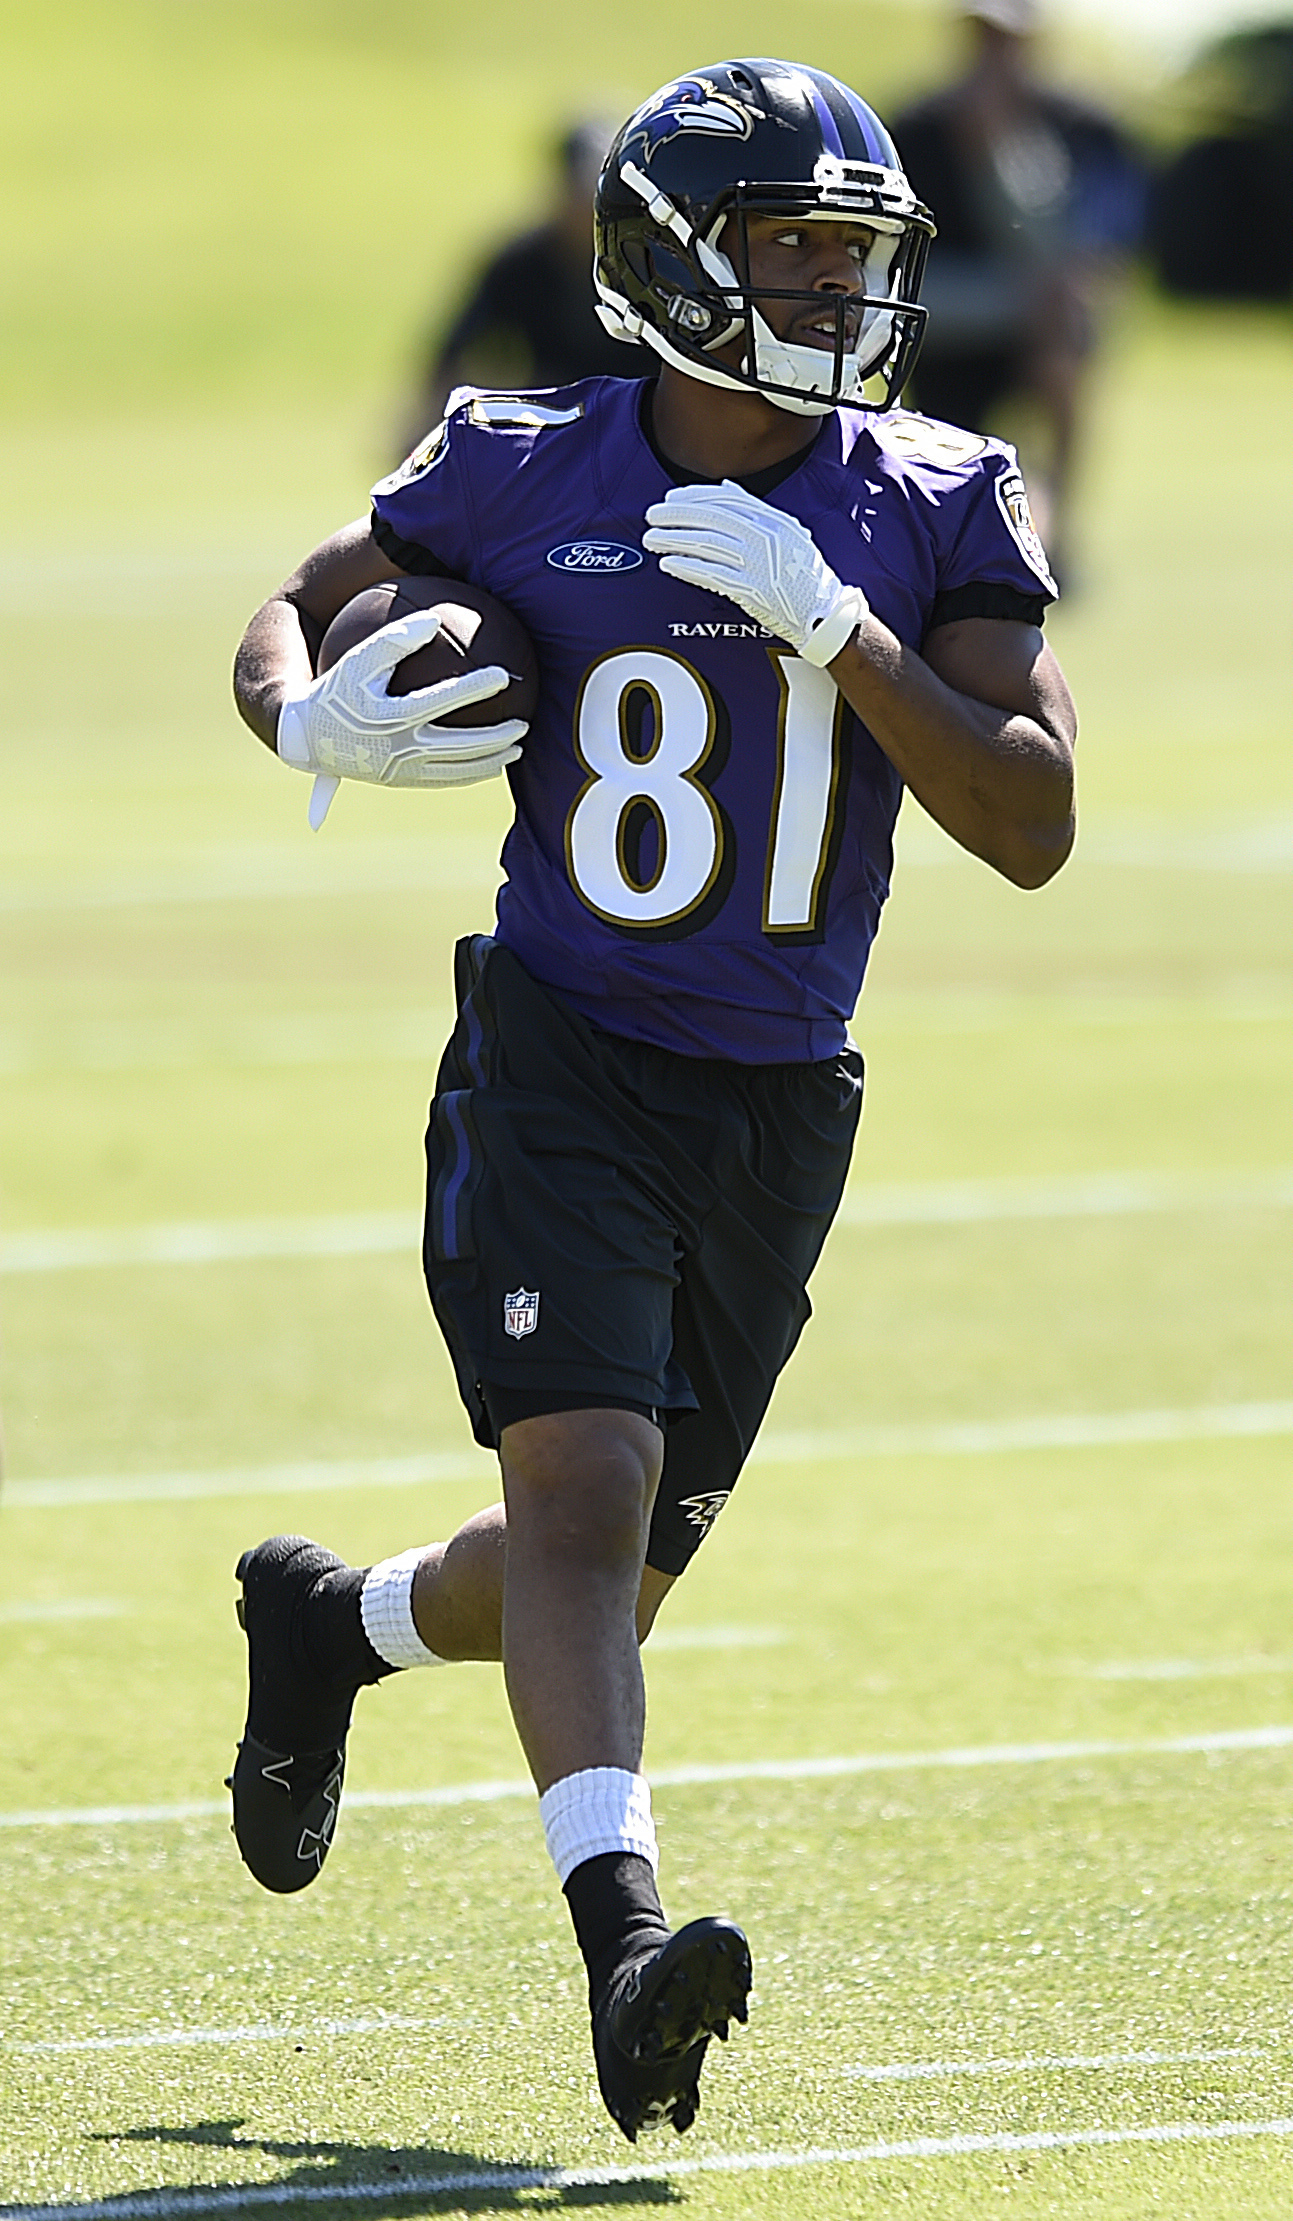 Baltimore Ravens wide receiver Keenan Reynolds catches a pass duringan NFL football practice, Tuesday, June 14, 2016 in Owings Mills, Md. (AP Photo/Gail Burton)